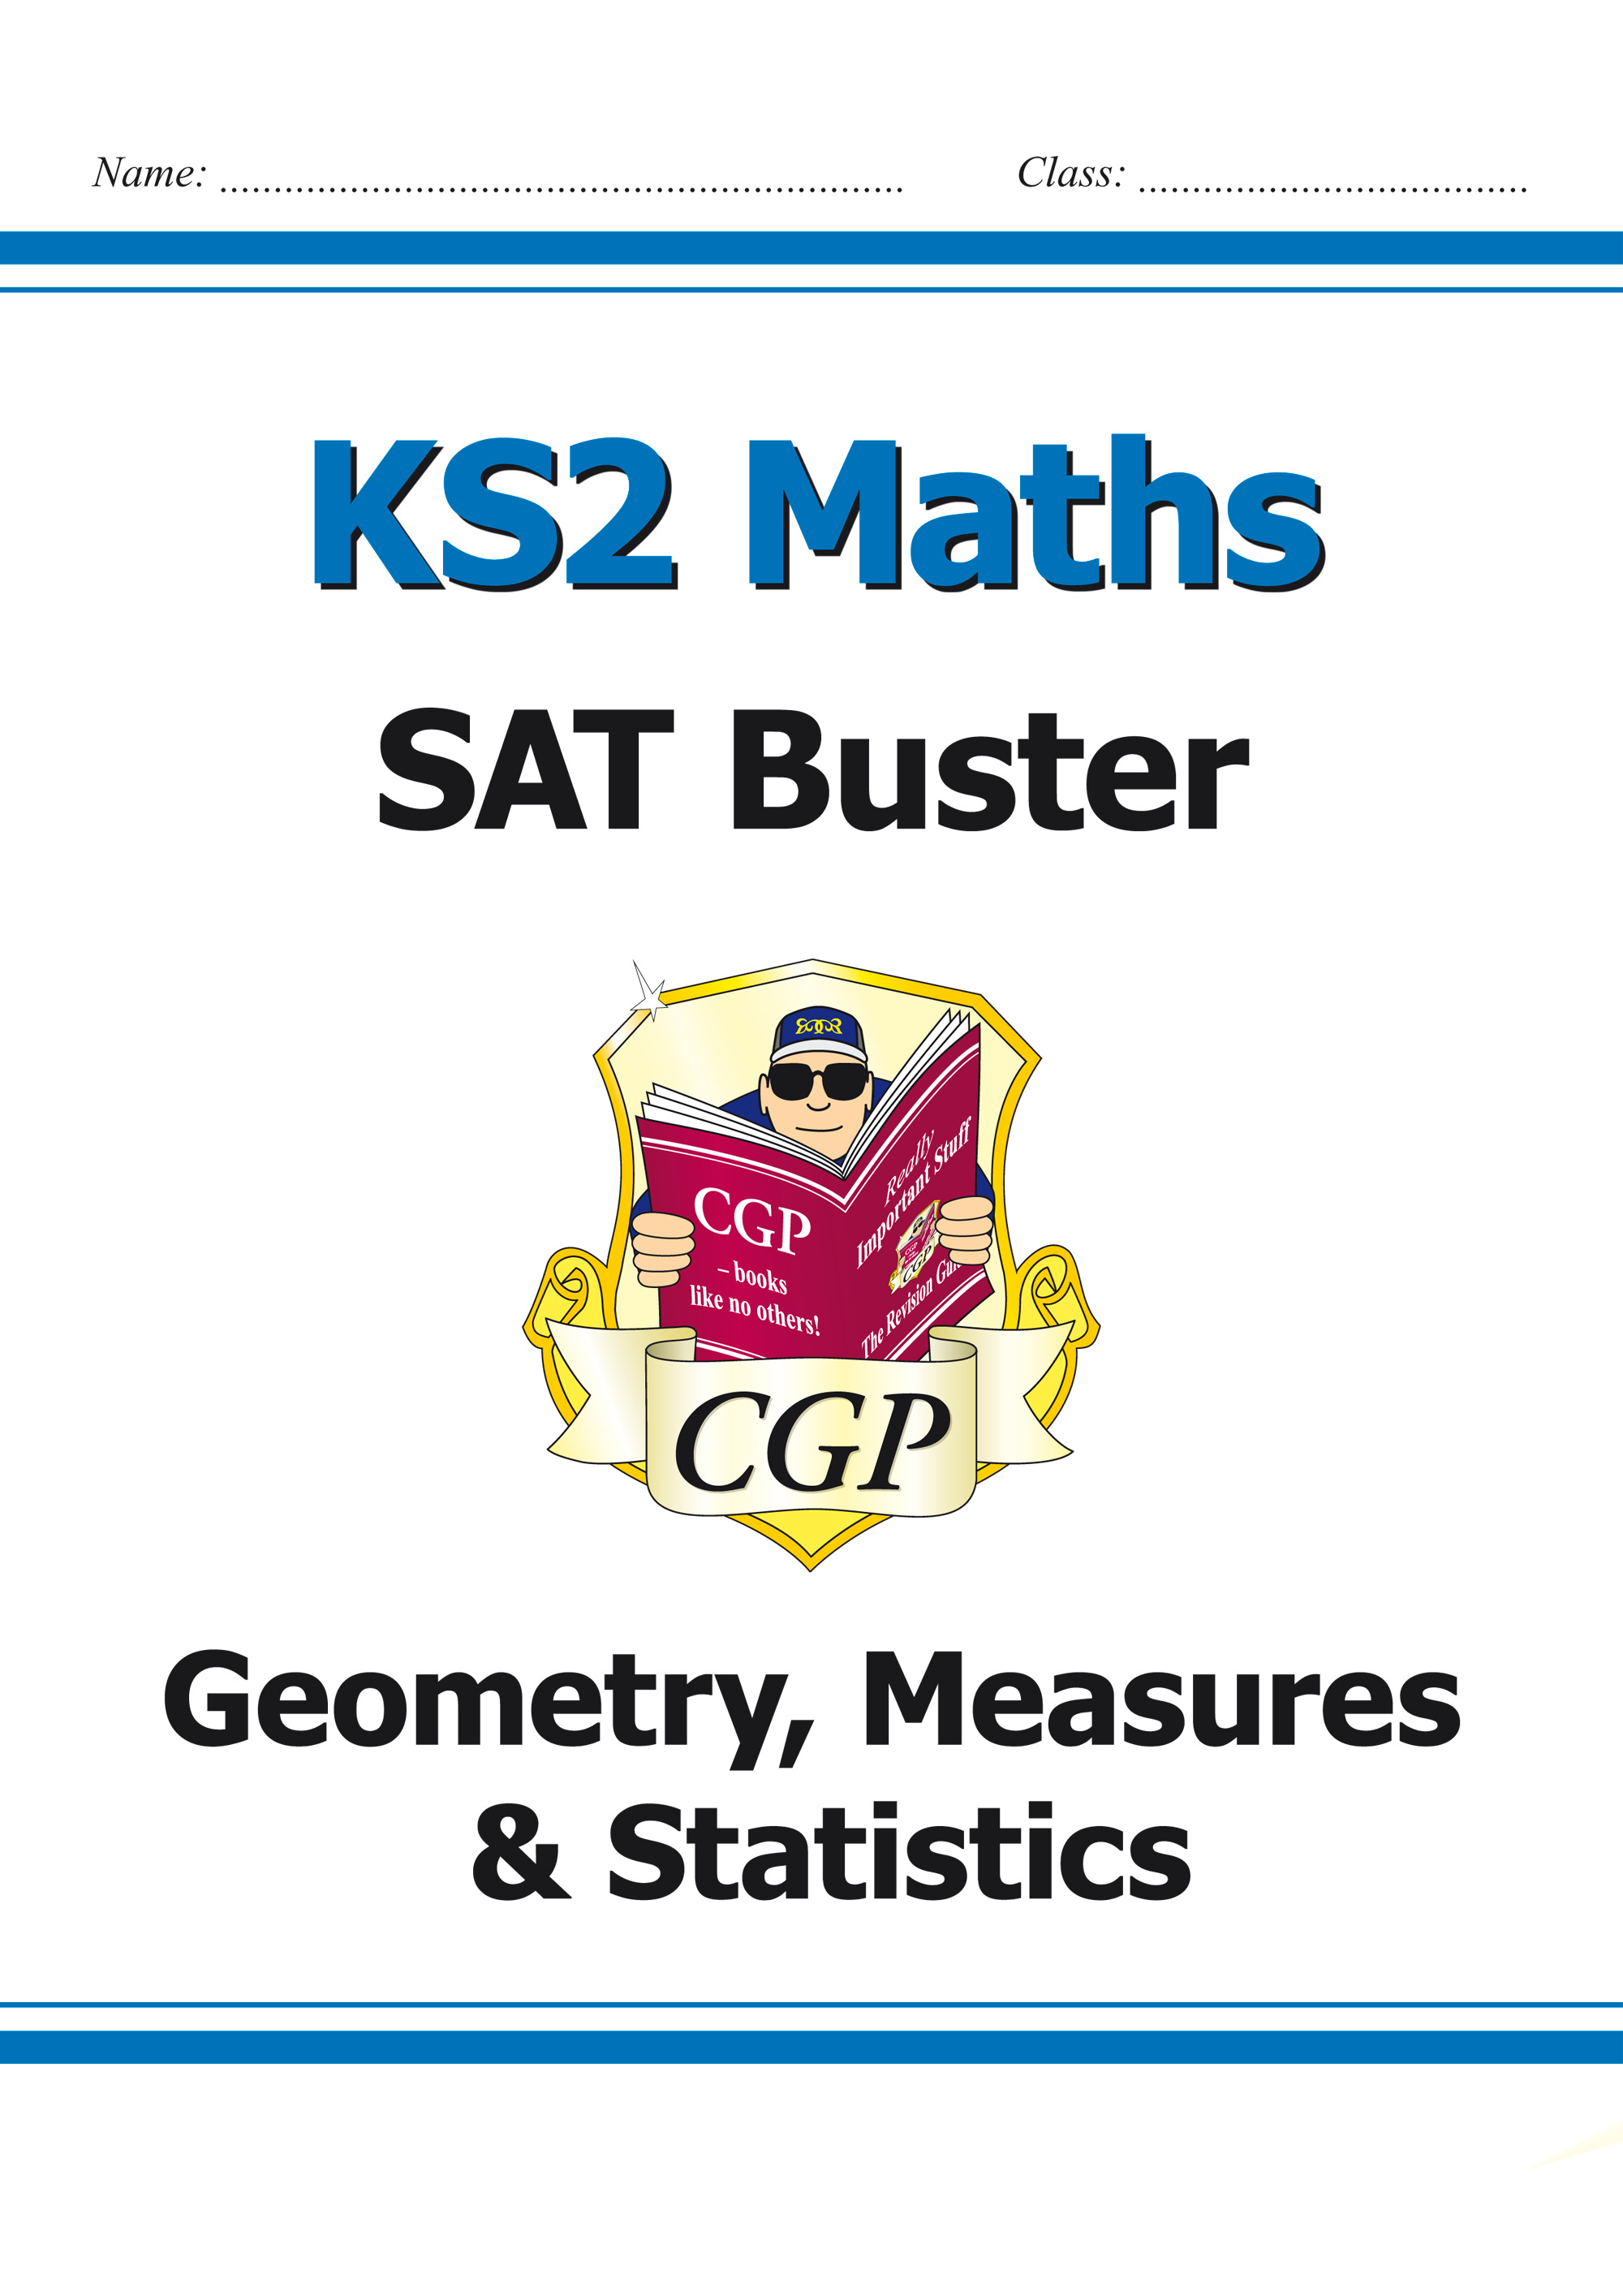 M6SMD23 - KS2 Maths SAT Buster: Geometry, Measures & Statistics Book 1 (for tests in 2019)